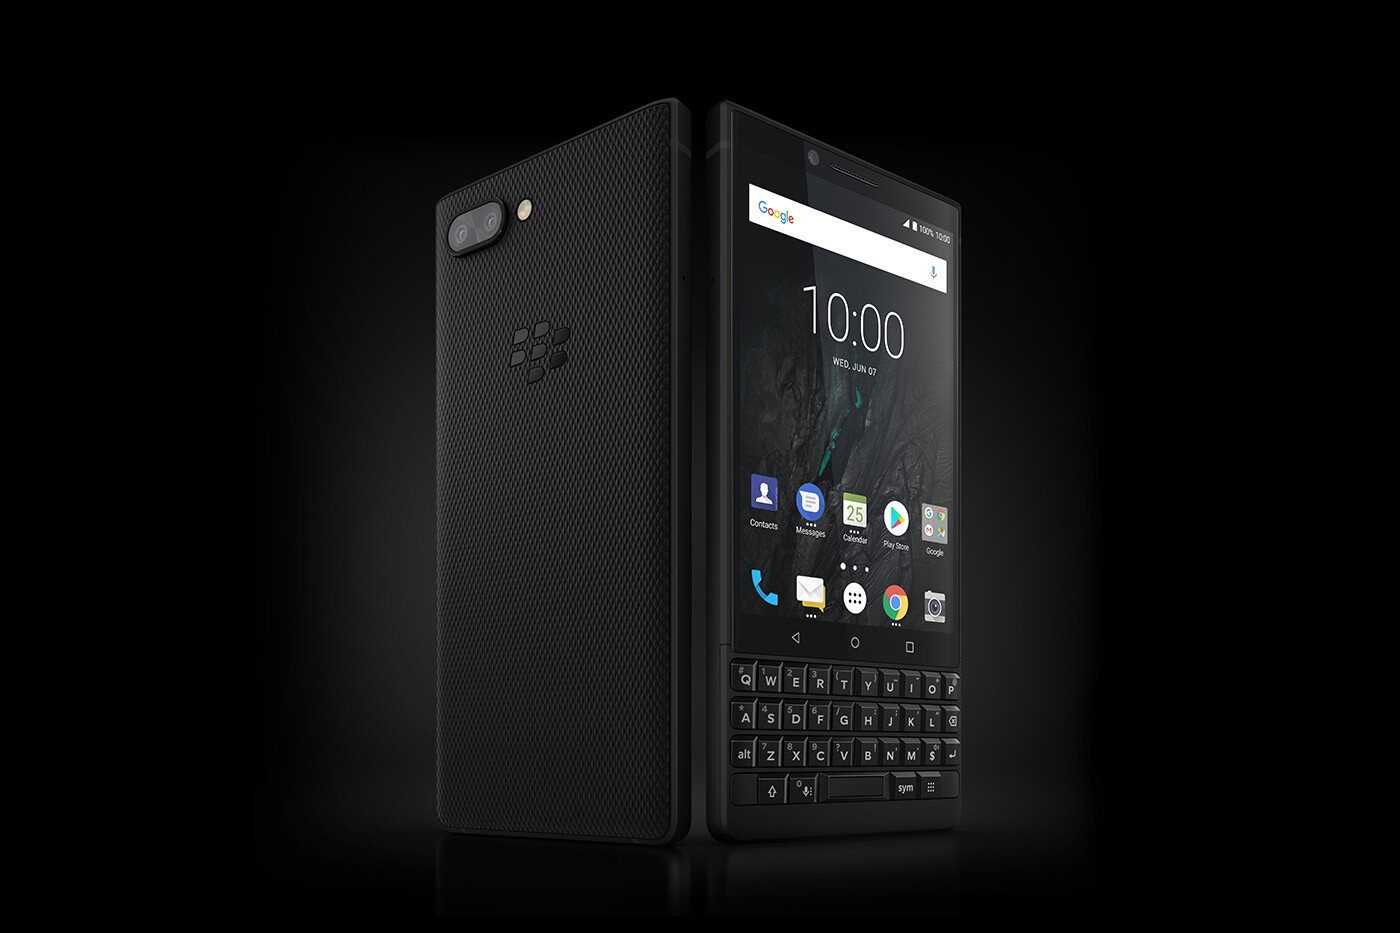 https://m.crackberry.com/sites/crackberry.com/files/styles/large/public/article_images/2018/06/blackberry-key2-press-sized-black.jpg?itok=jdSpOJdy